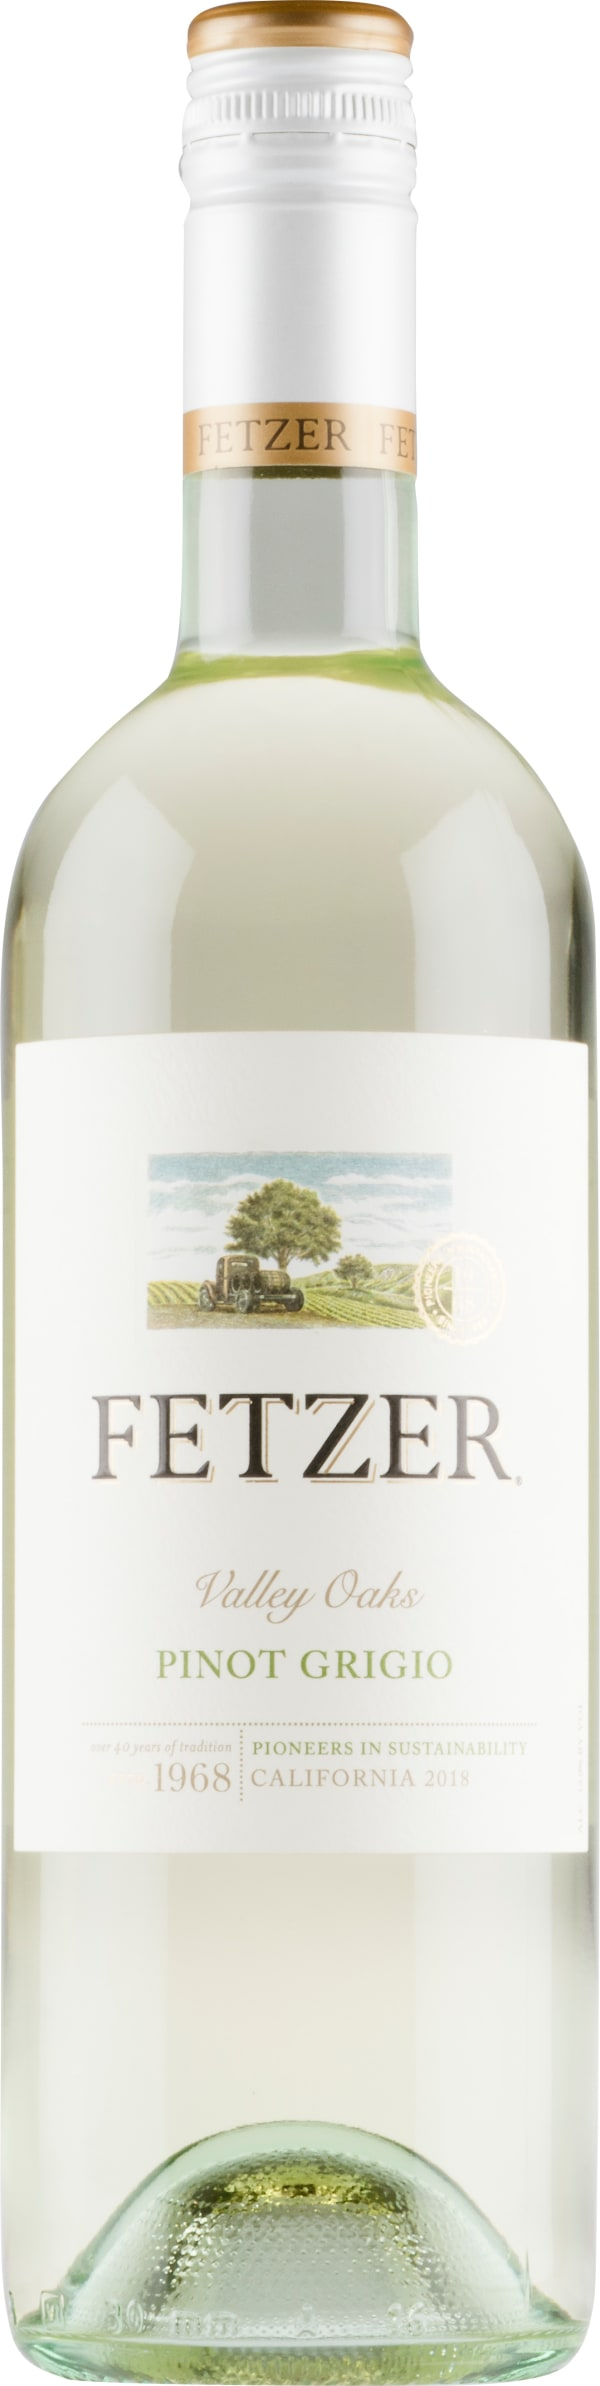 Fetzer Valley Oaks Pinot Grigio 2018